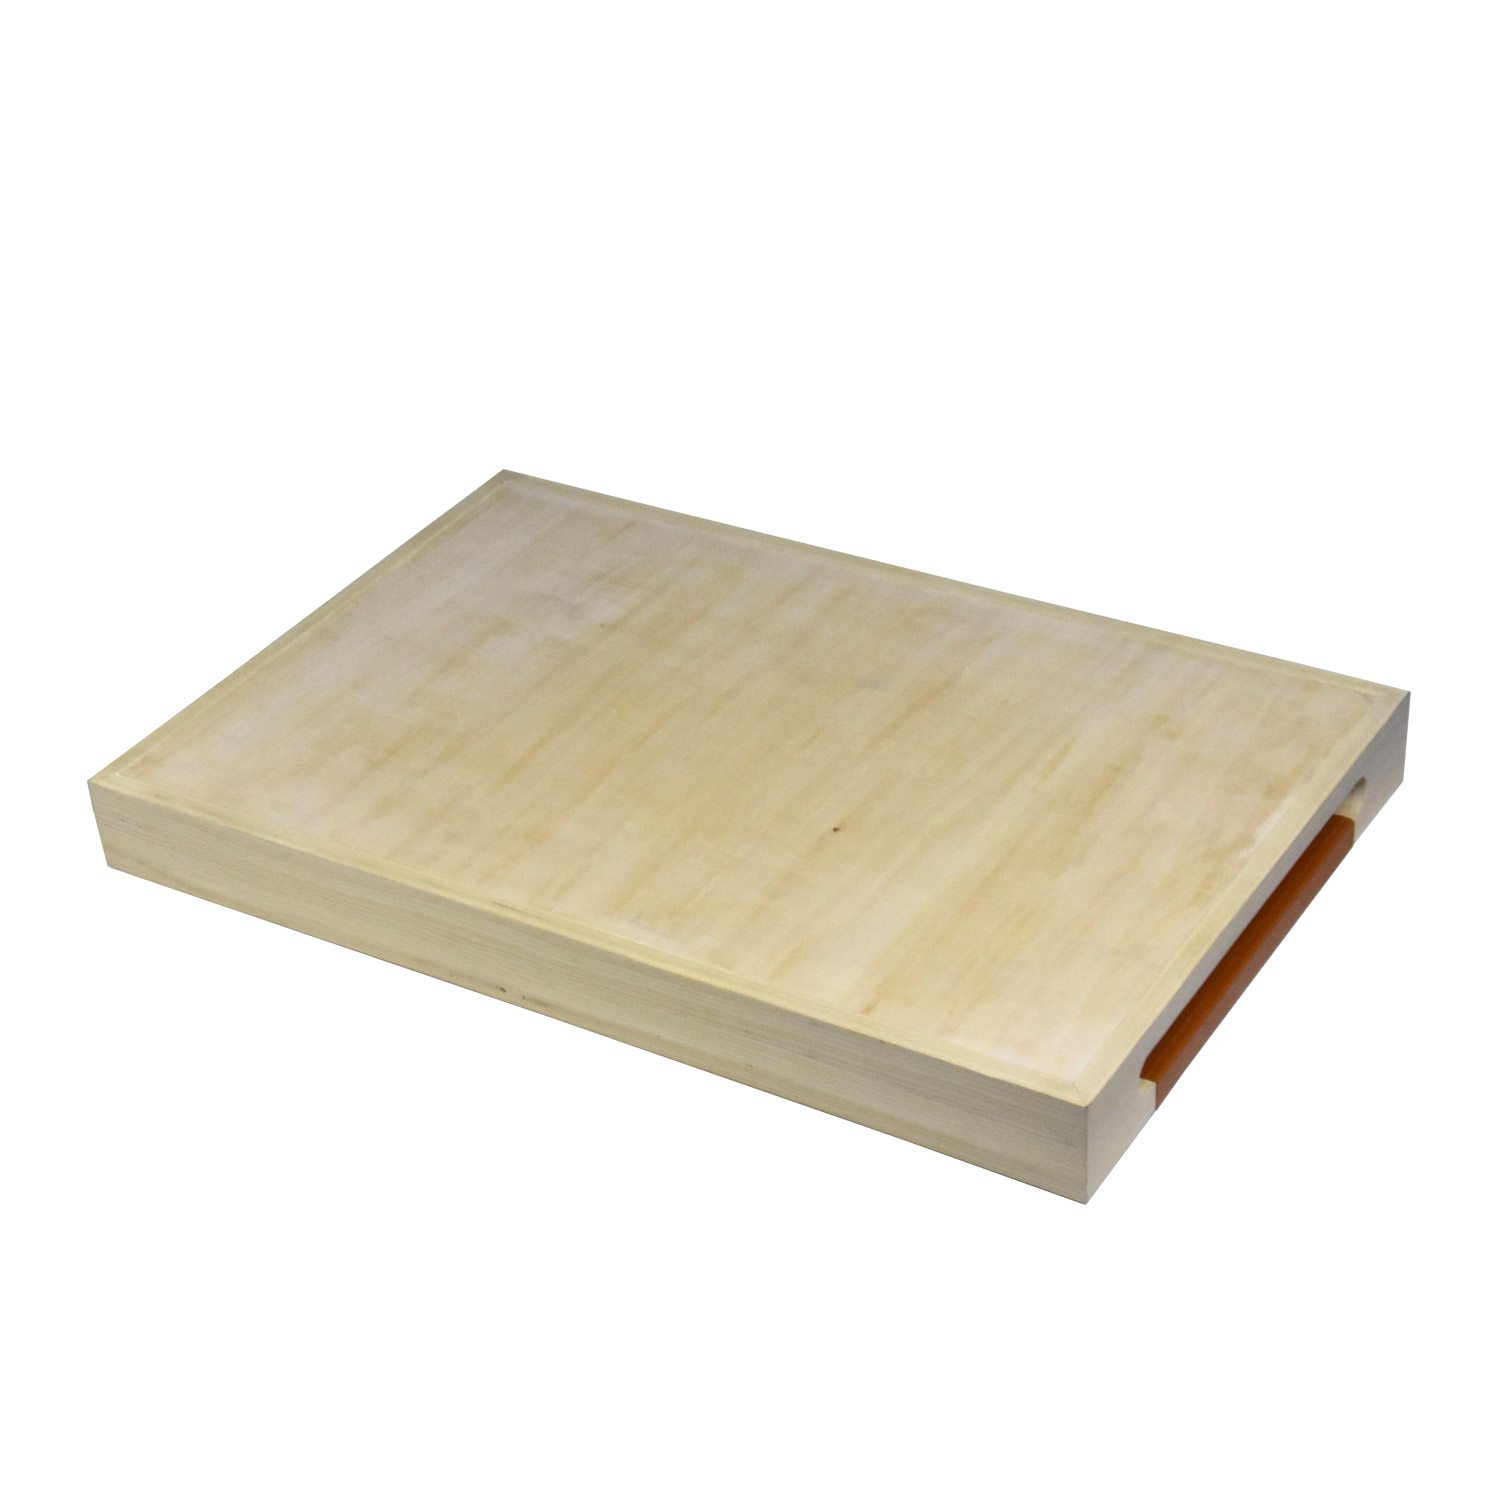 High Quality Best Selling Office Hotel Wooden Portable Serving Tray Organizer